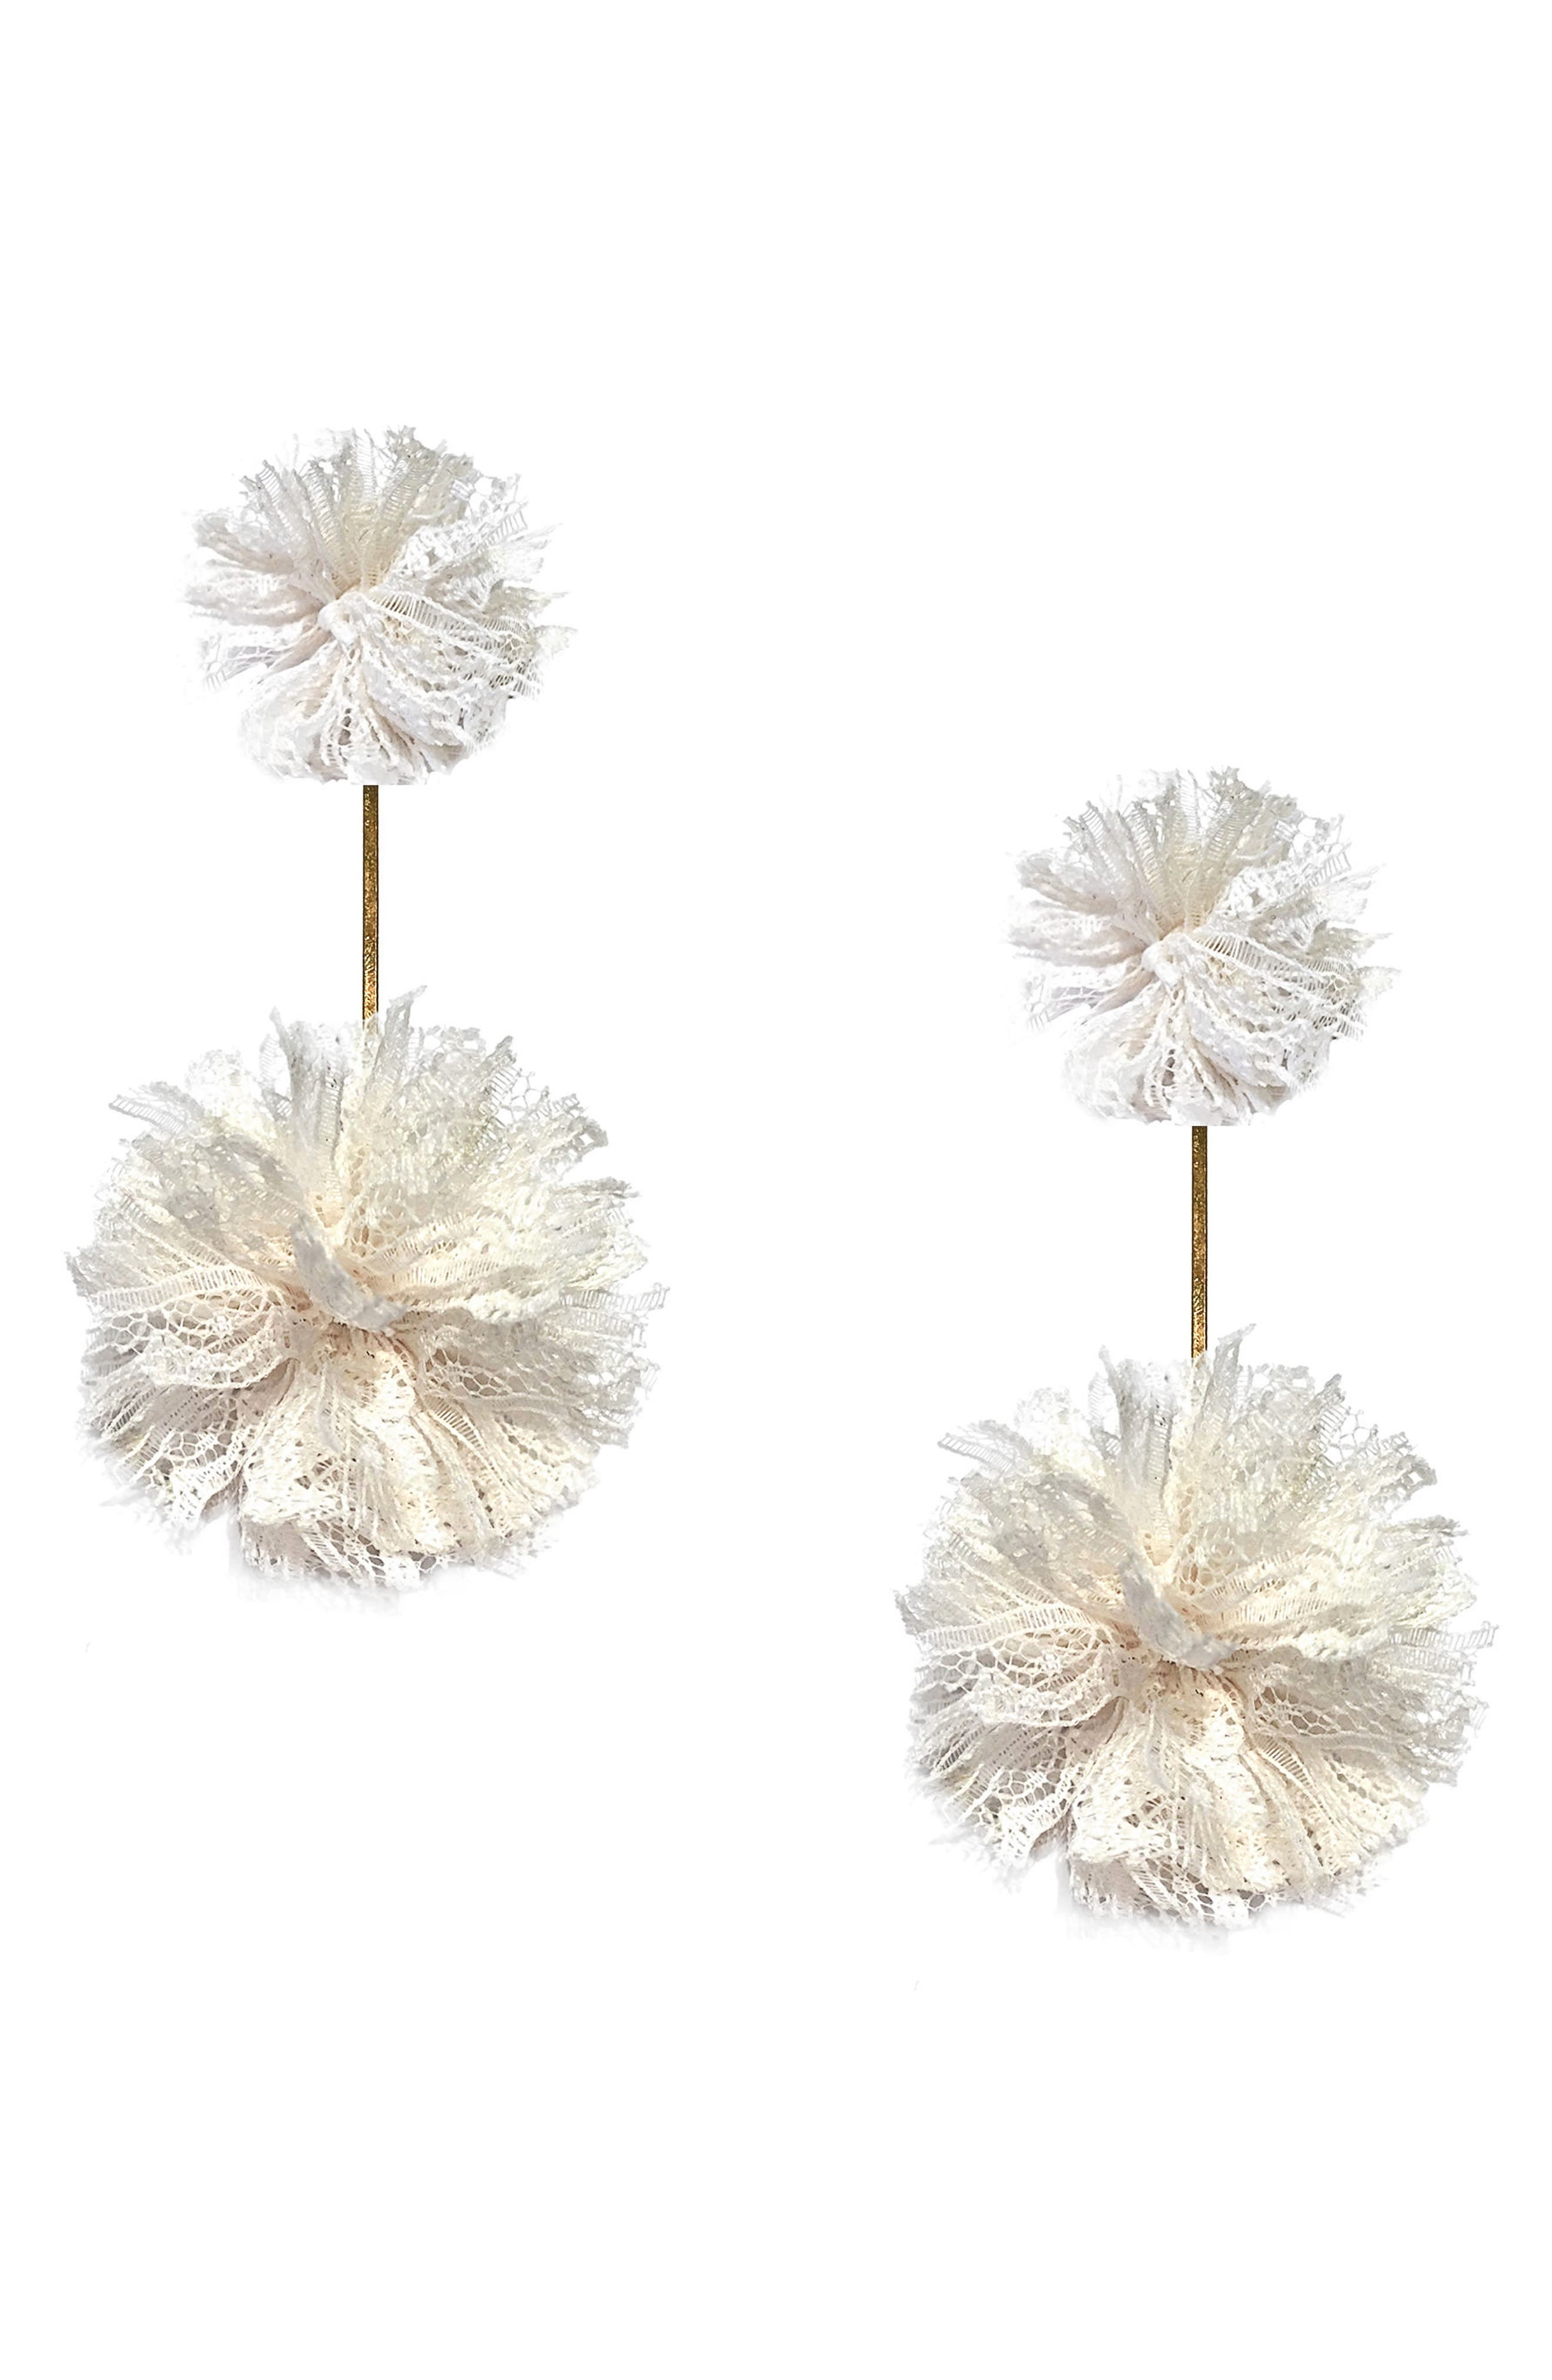 Double Lace Pom Pom Earrings,                             Main thumbnail 1, color,                             Gold/ White